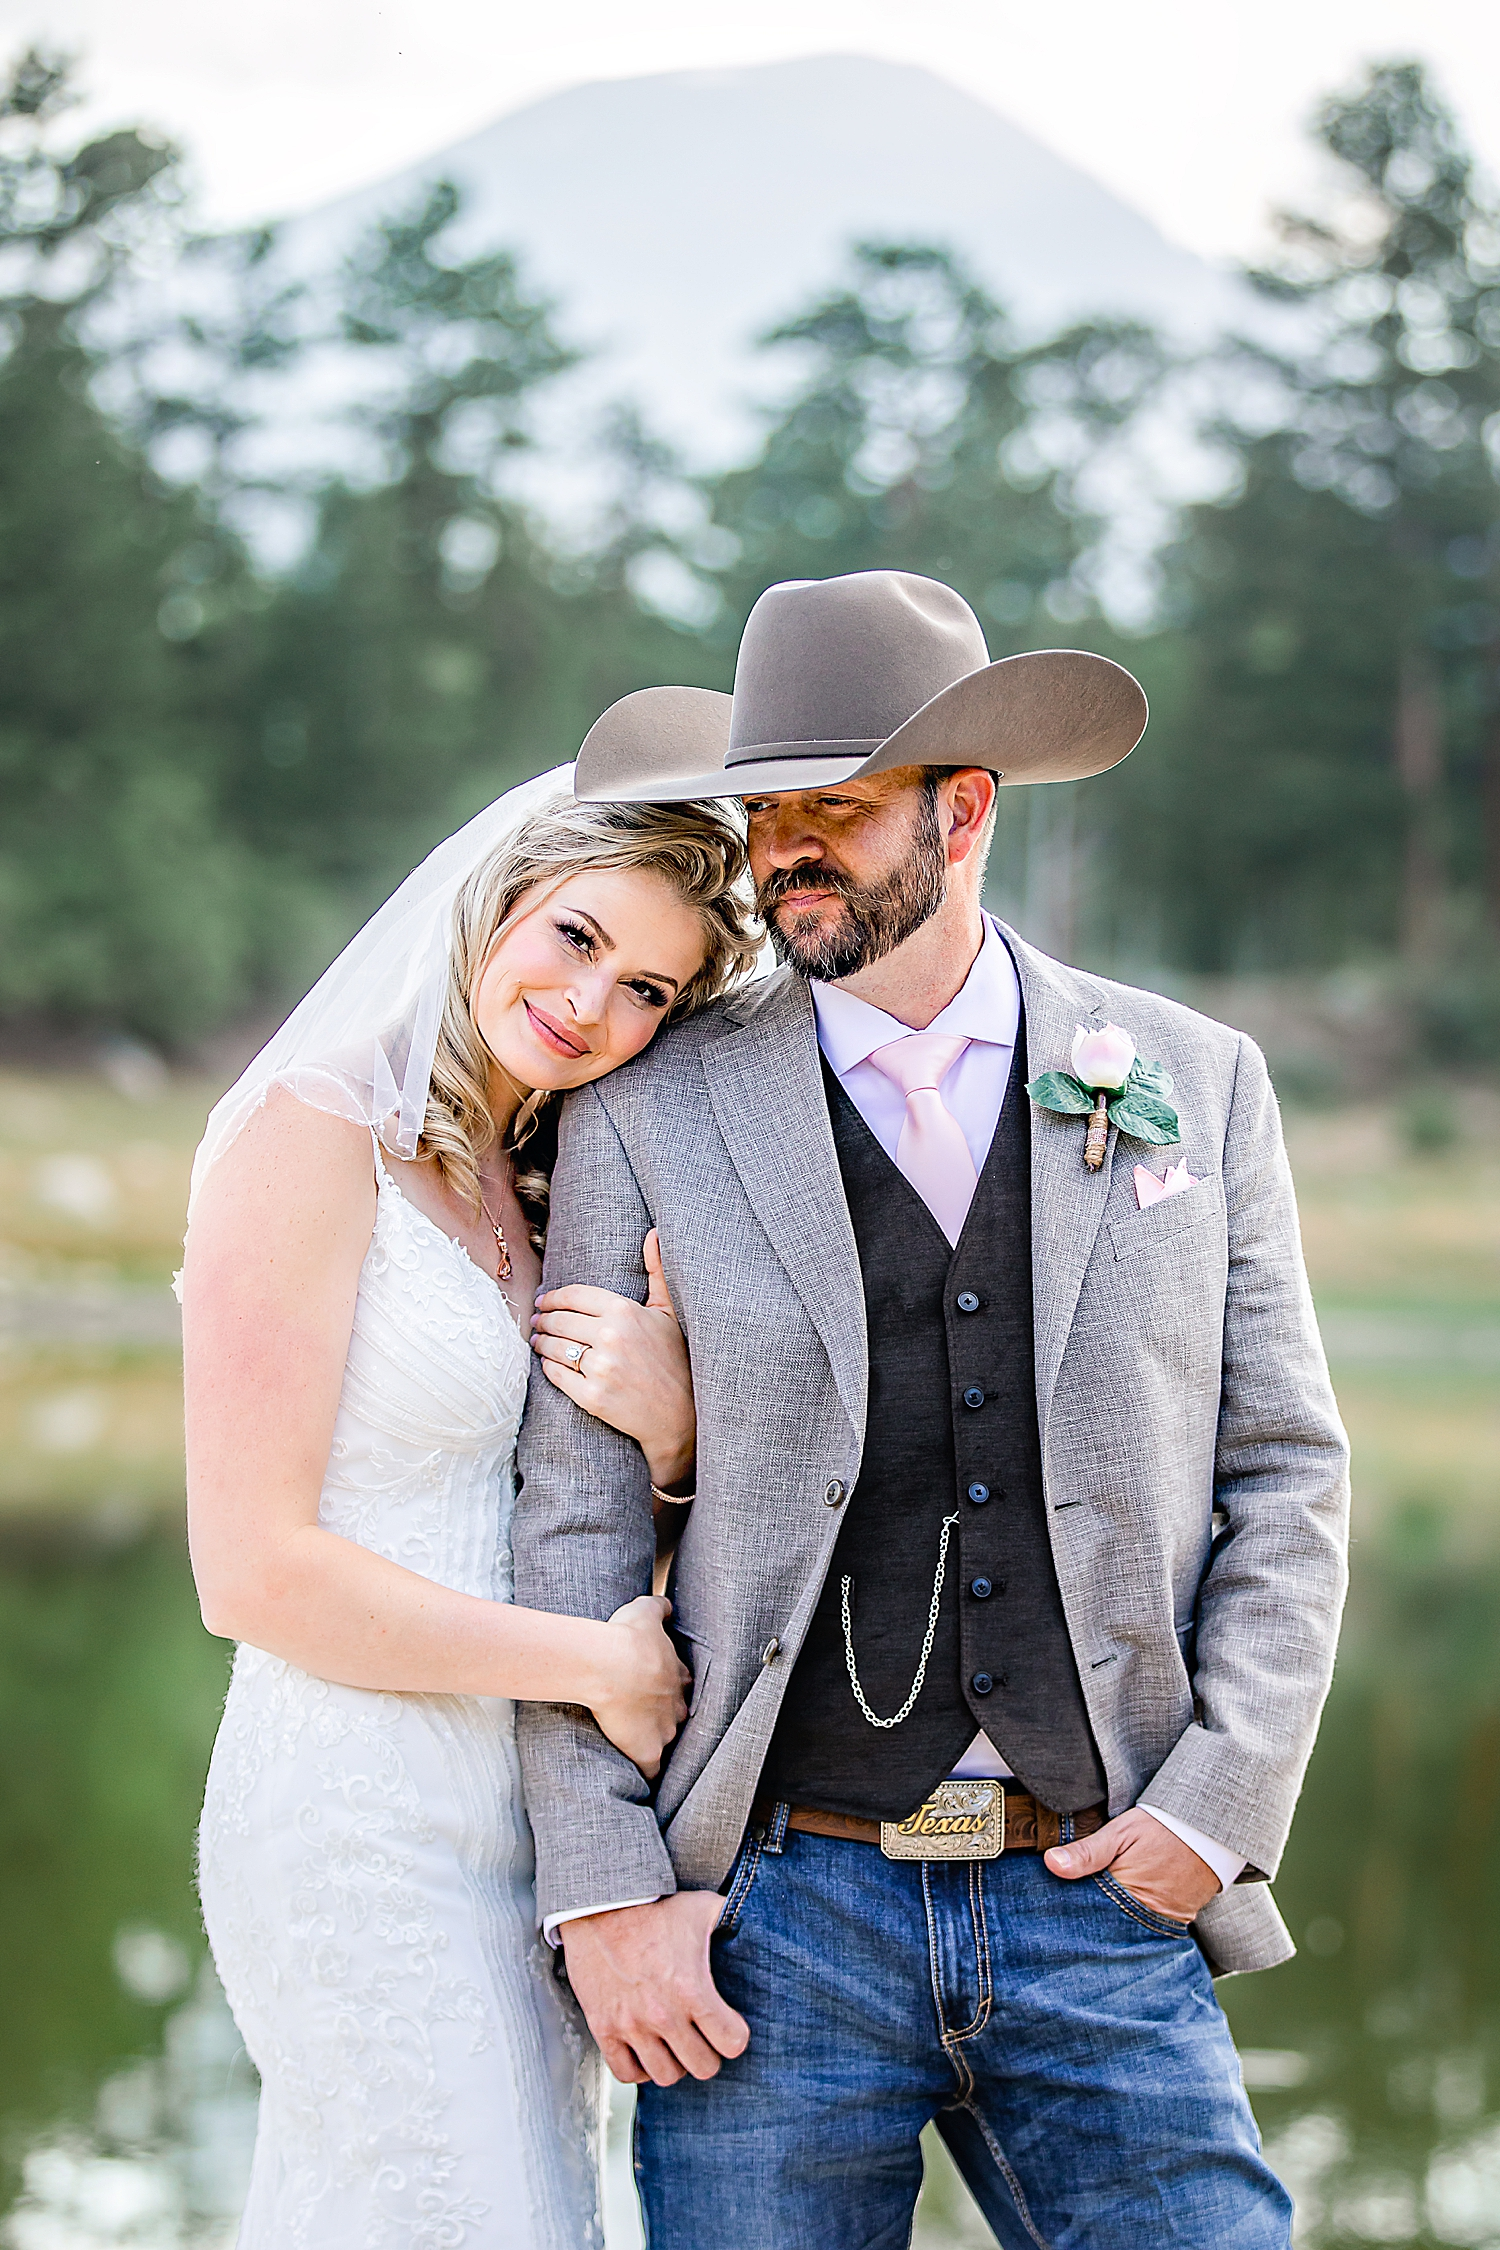 Carly-Barton-Photography-Rocky-Mountain-National-Park-Estes-Park-Wedding-Elopement_0020.jpg